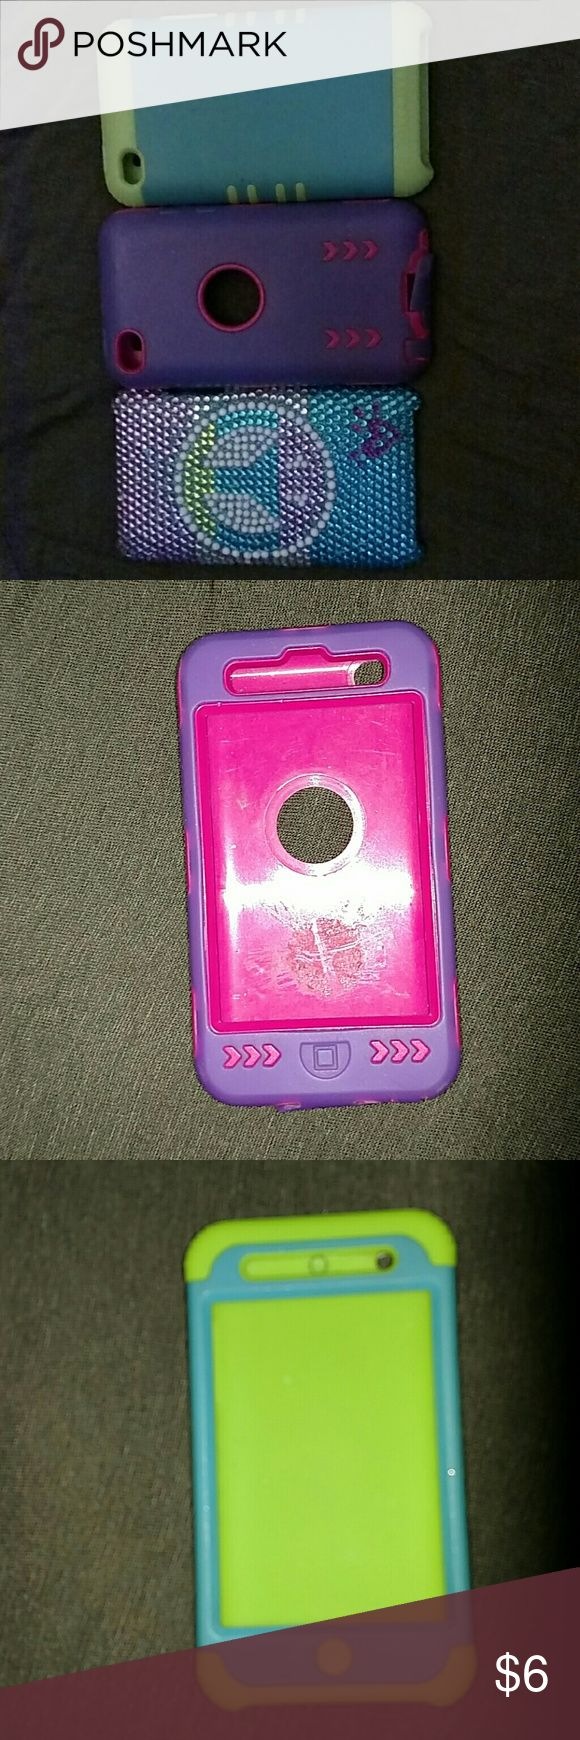 3 ipod cases A Justice ipod case that has a peace sign on it. It has some old tape sticky stuff on the back but does not bother anything and you can't see it, no jewels missing. A purple and pink case. A blue and green case. All as one thing Accessories Phone Cases